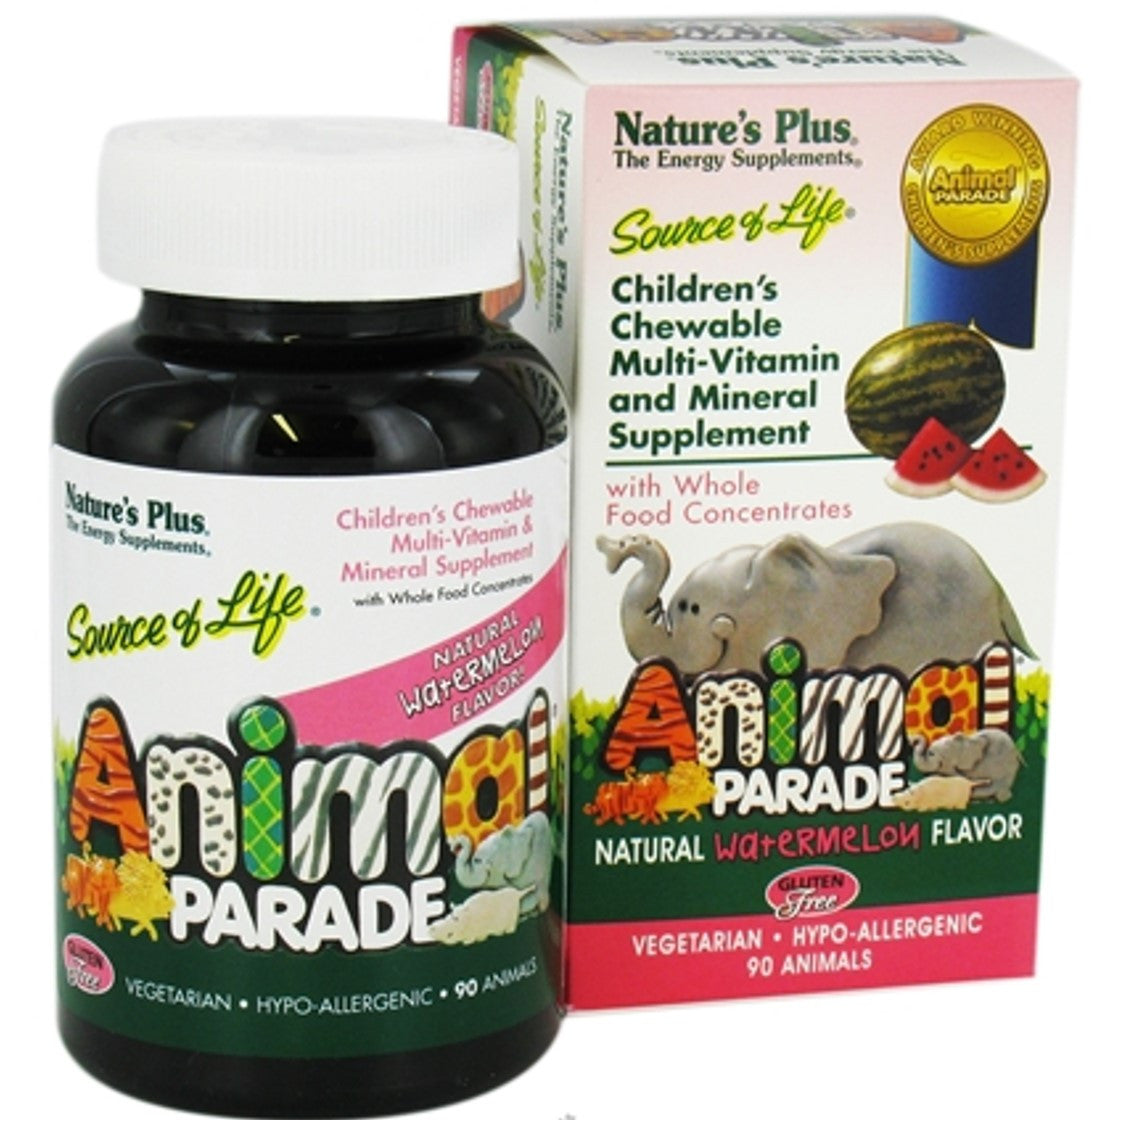 Natures Plus Source of Life Animal Parade Multi-Vitamin & Mineral (Water Melon), 90 tabs.-NaturesWisdom